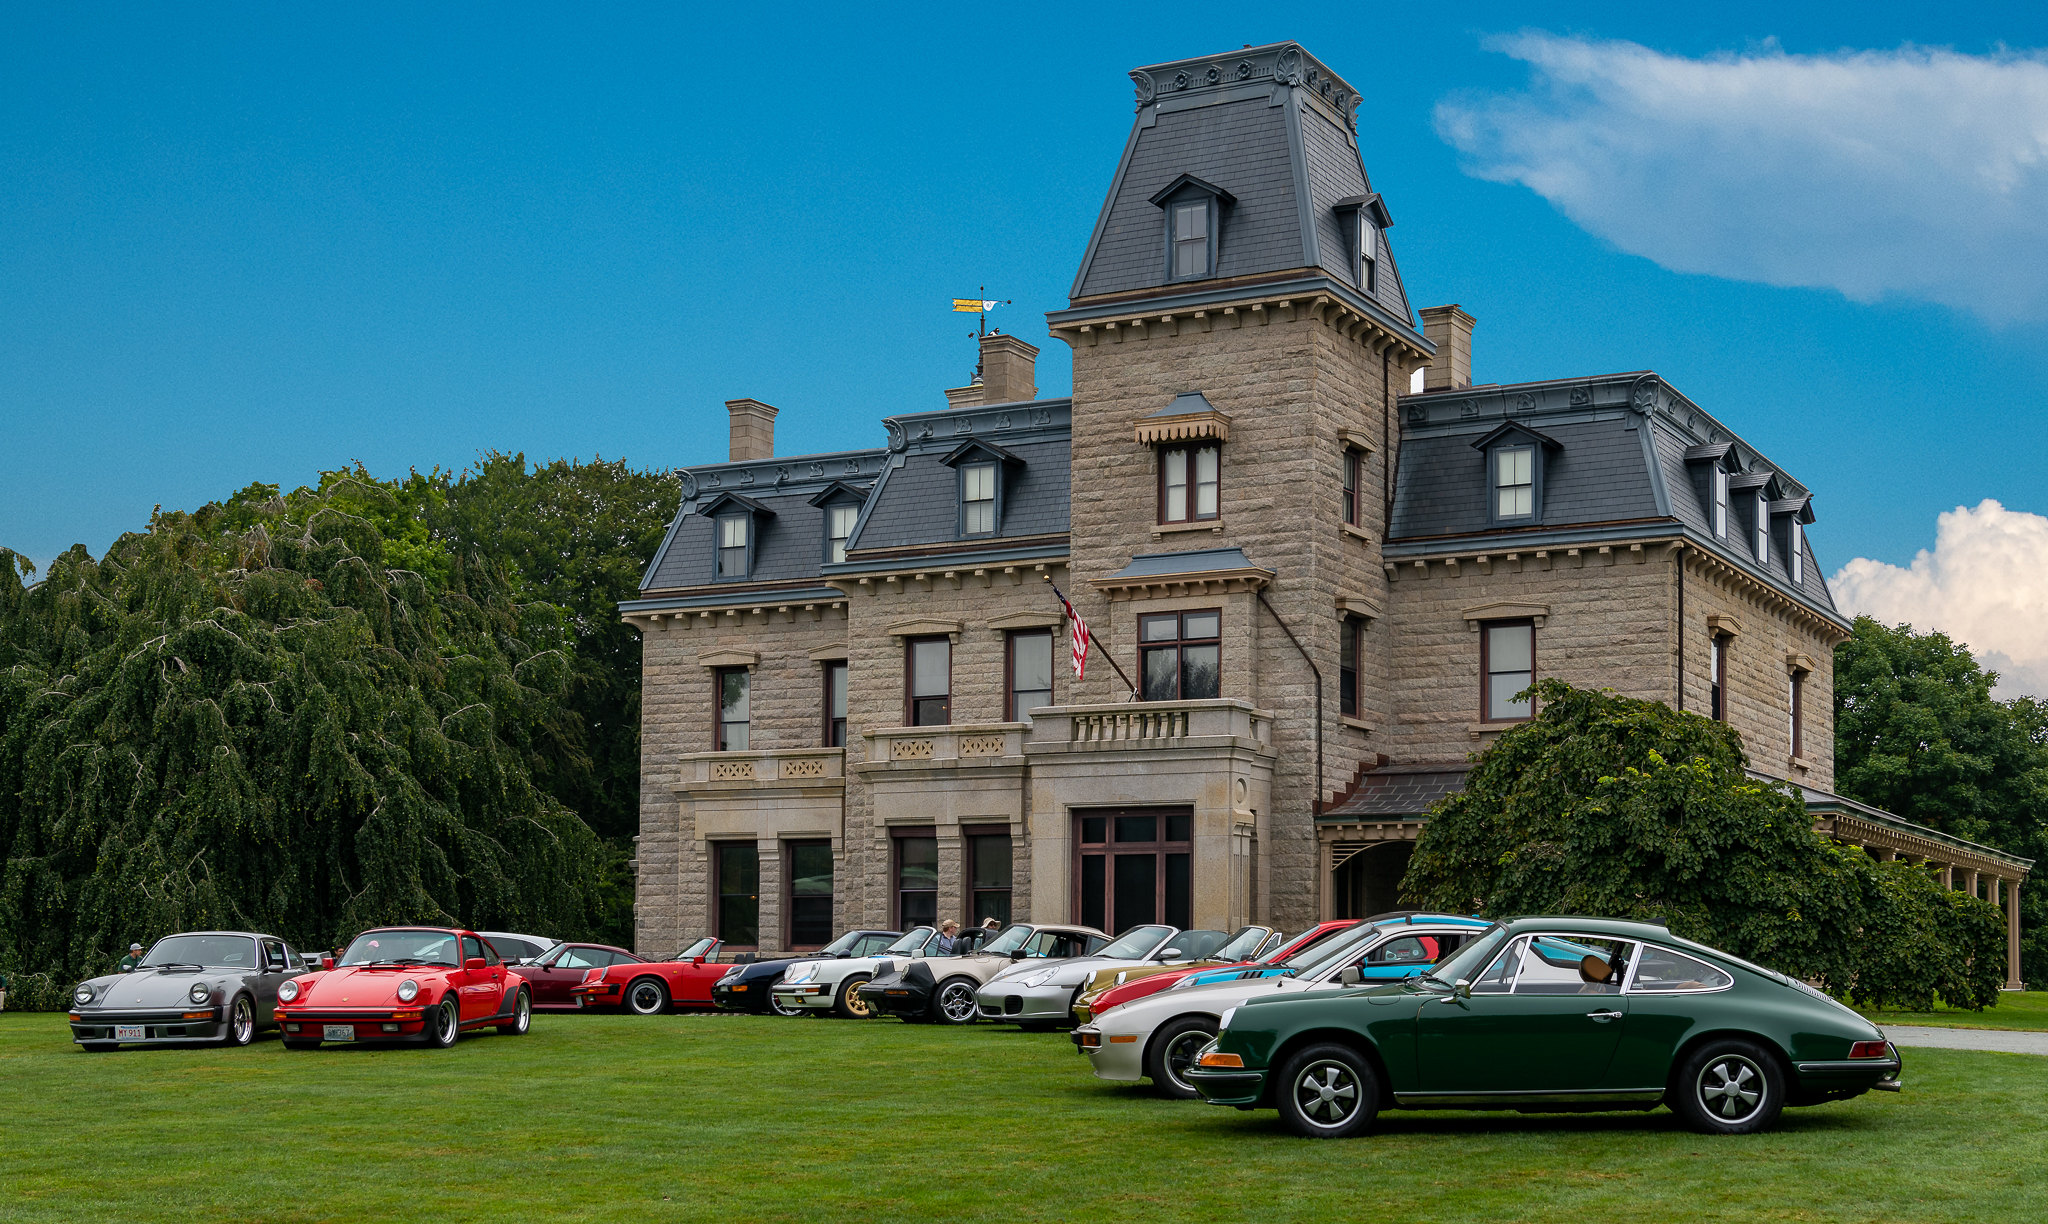 Larry Levin captures Porsche diversity in front of Chateau-sur-Mer in Newport RI